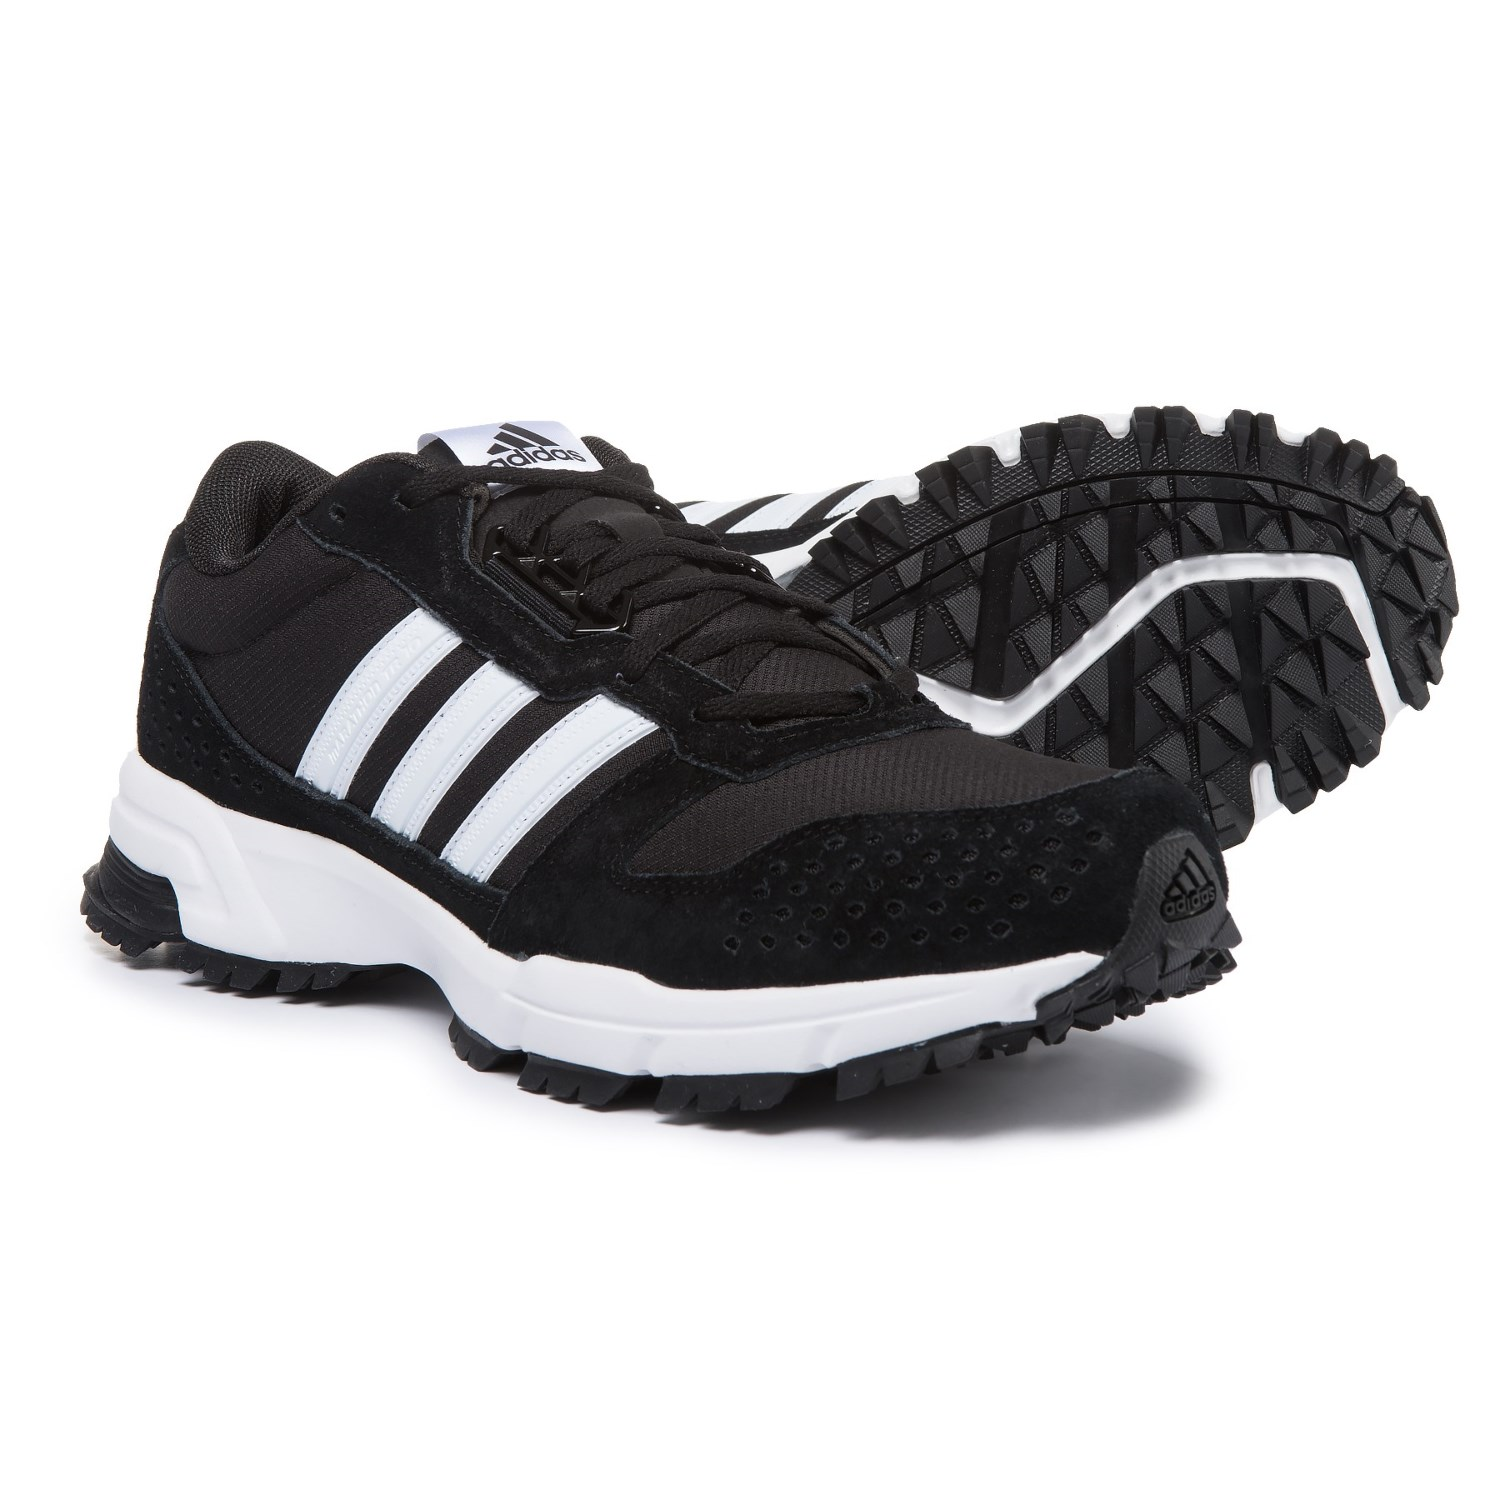 adidas outdoor Marathon 10 Trail Running Shoes (For Men)